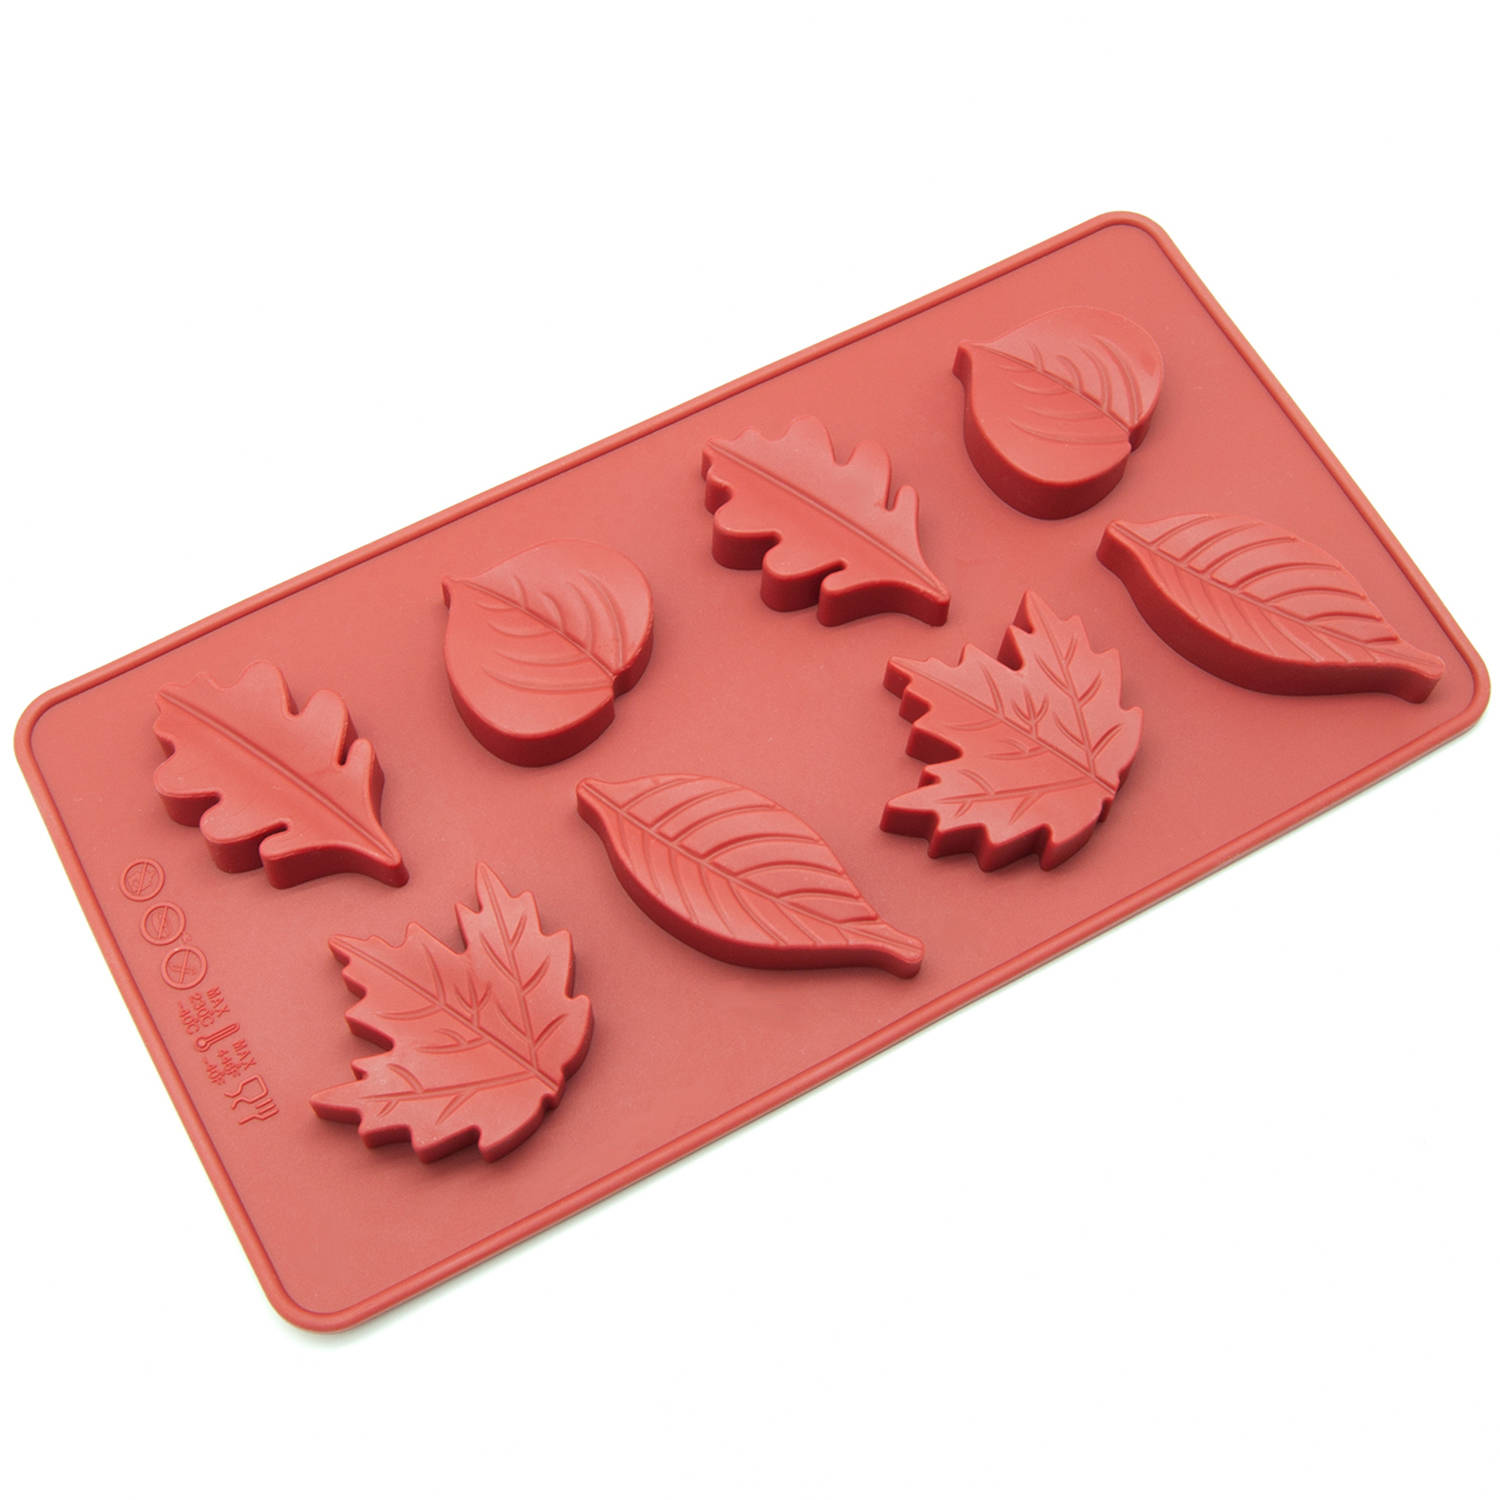 Freshware 8-Cavity Maple Leaves Silicone Mold for Chocolate, Candy and Gummy, CB-600RD